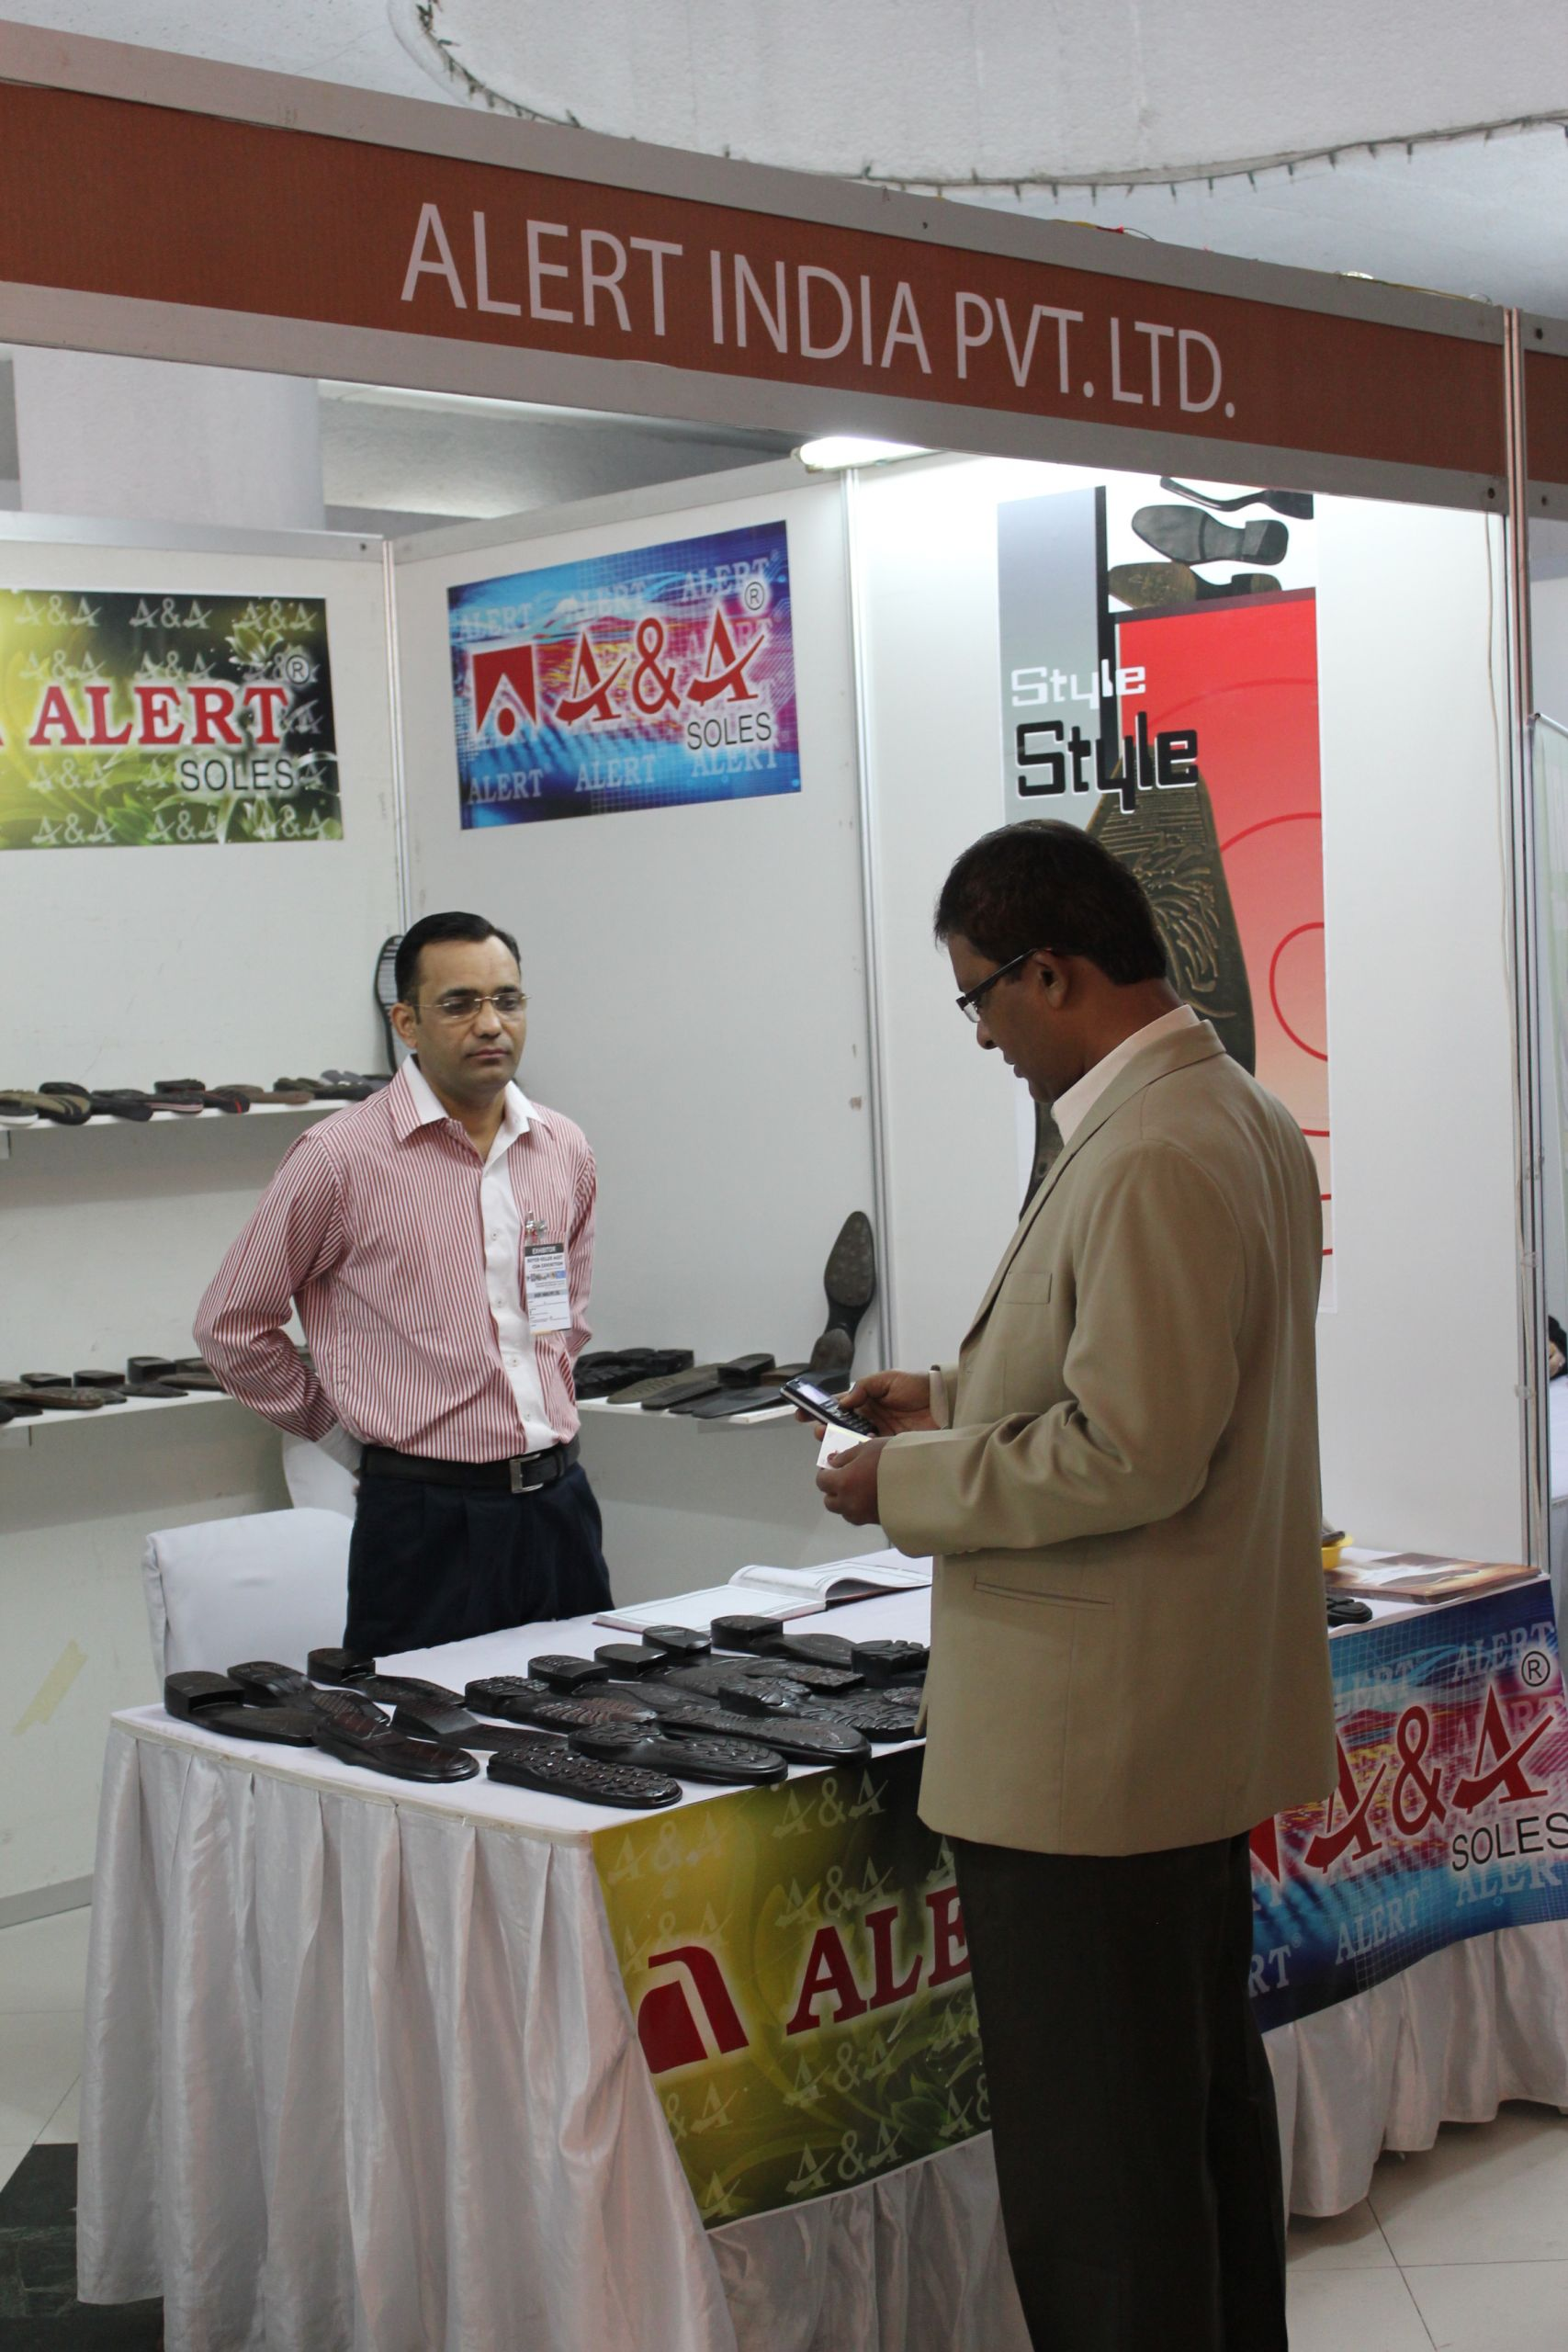 DTC-Expo-Post-Buyers-Sellers-Meet-cum-Exhibition-Featured-Image-04